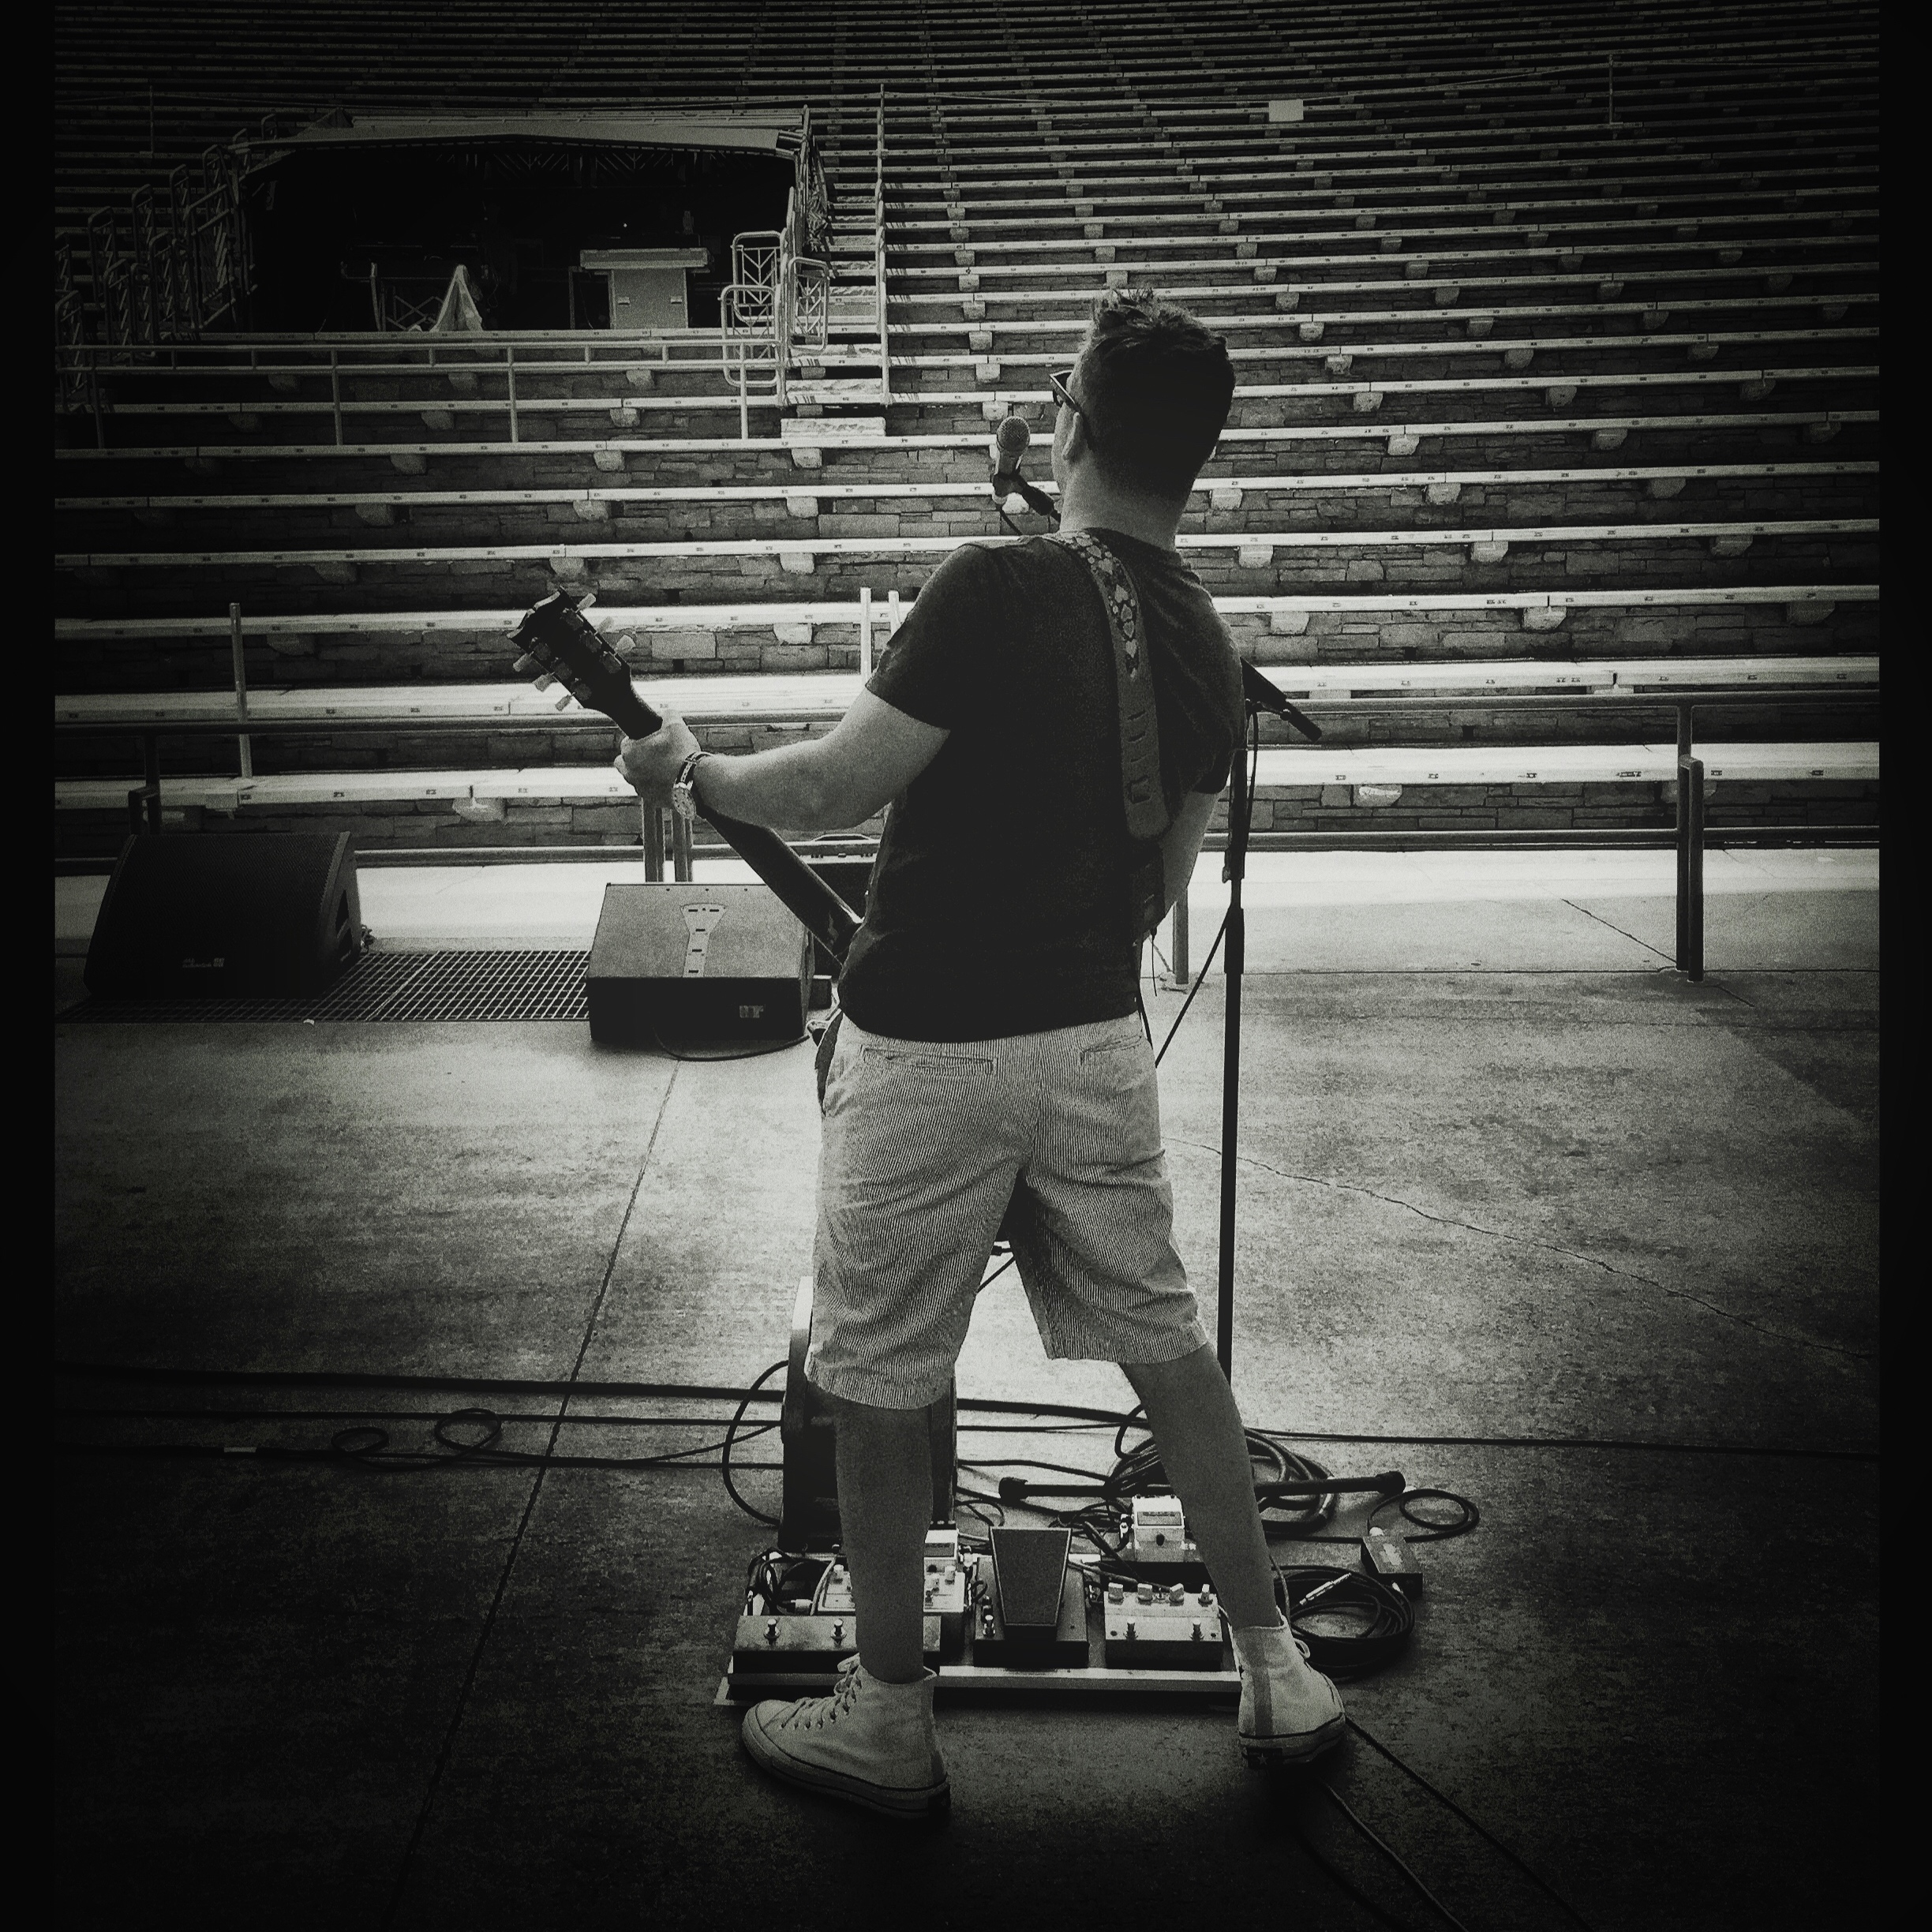 Almost living out my dream of rock stardom. - Red Rocks, Colorado